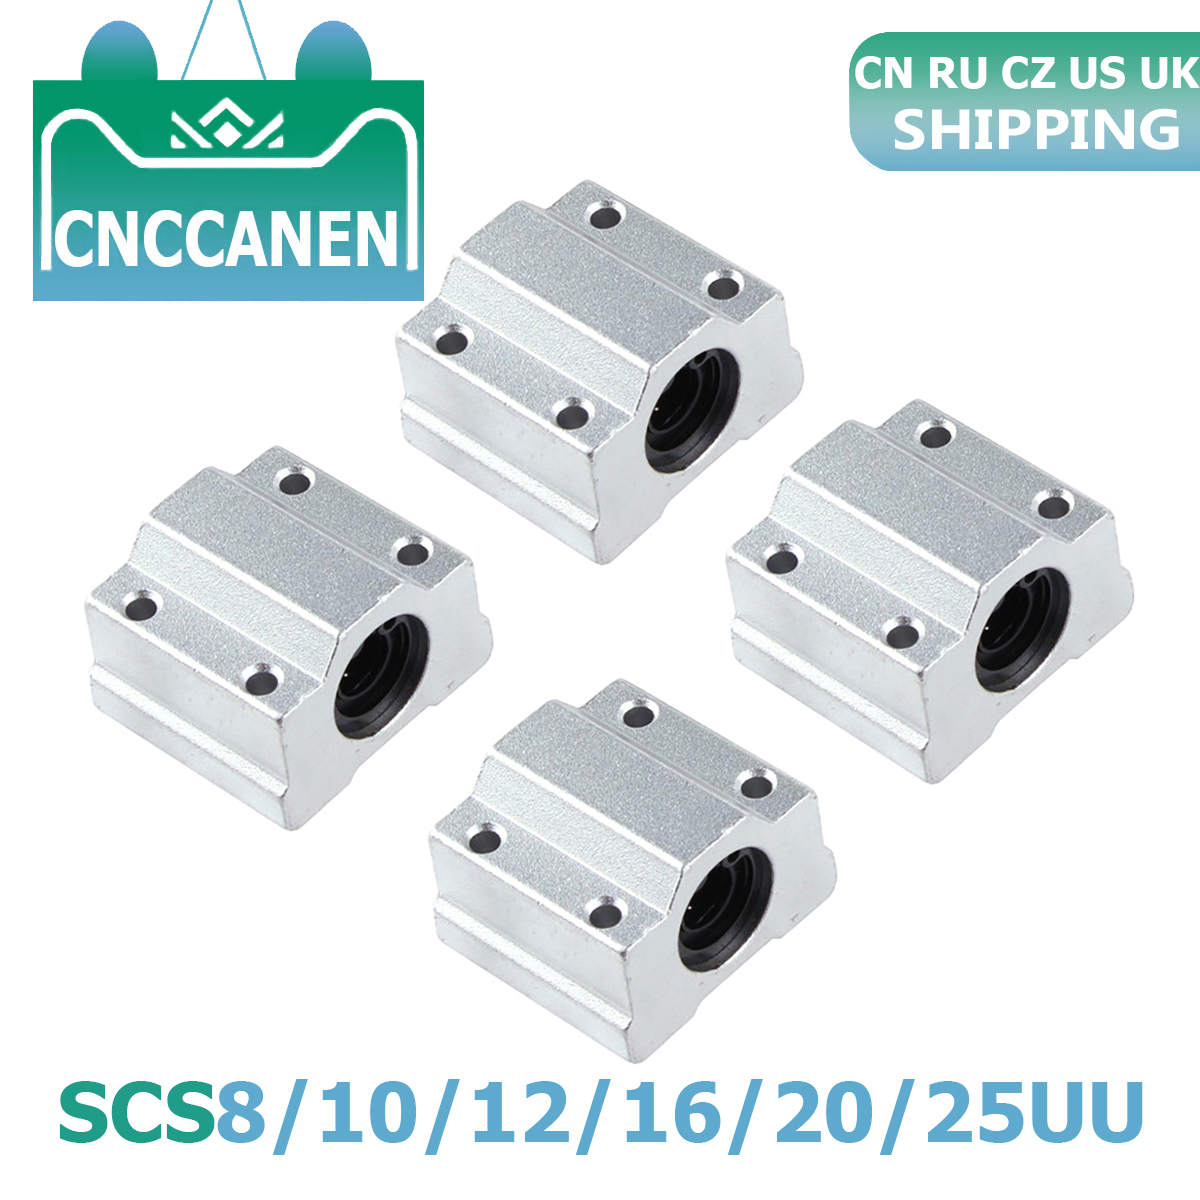 4PCS Linear Motion Ball Bearing Slide Block Bushing SC8UU SCS8UU SC10UU SCS12UU 16UU 20UU 25UU Linea